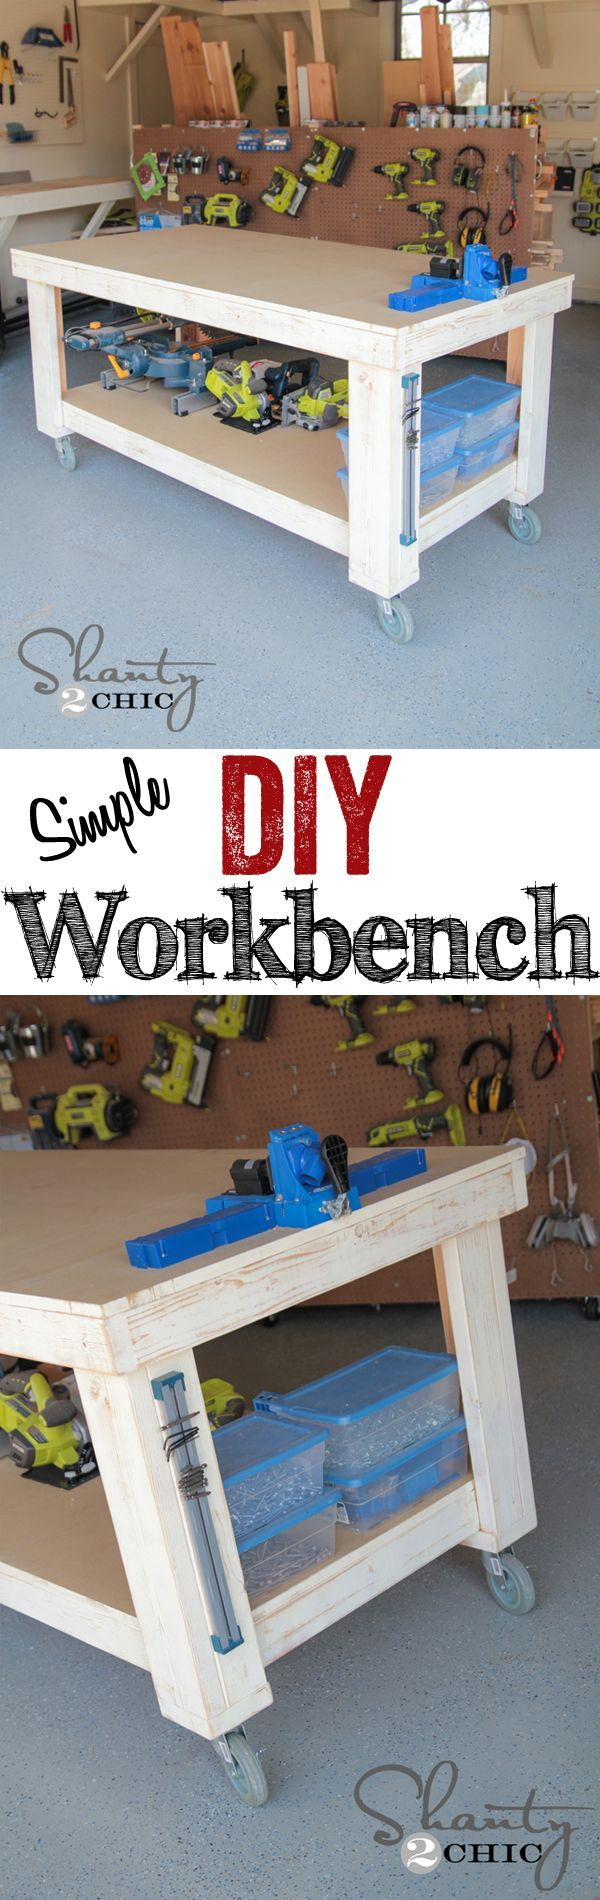 Free and Easy DIY Storage Project Plan from Shanty2Chic: Learn How to Build a Mobile Kreg Jig Workbench